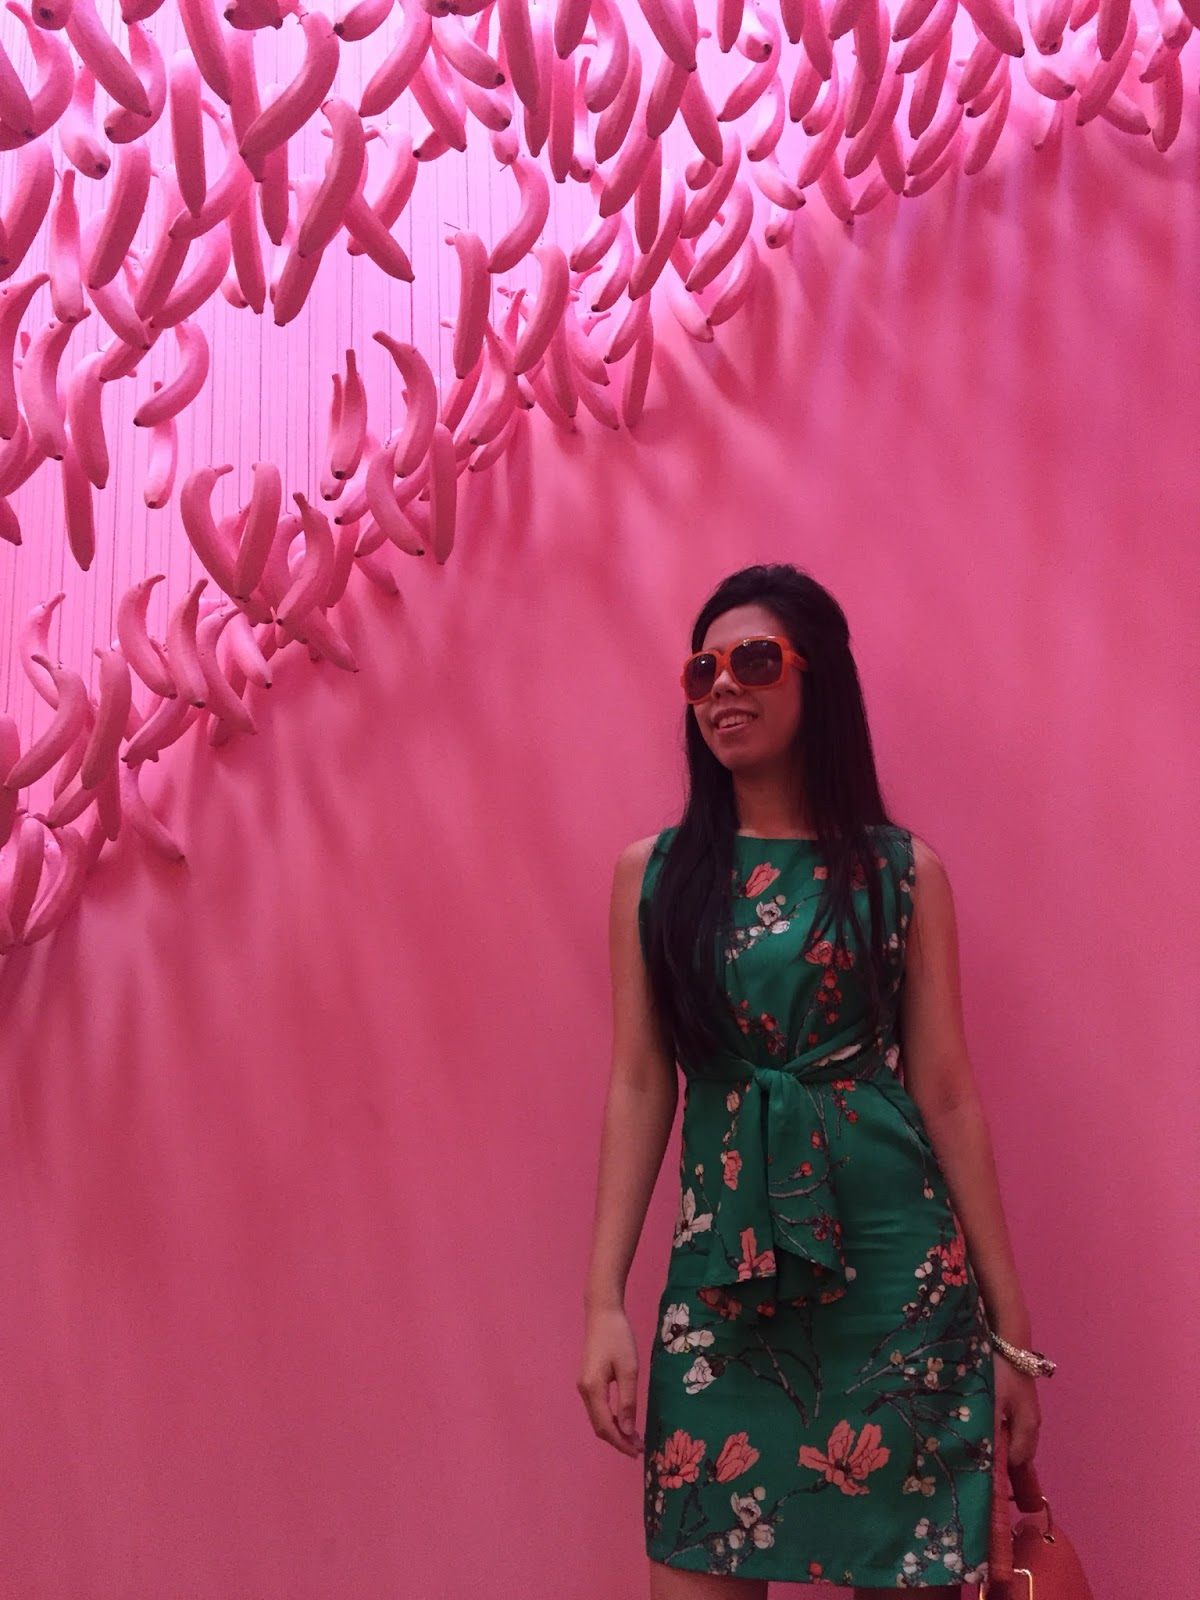 Adrienne Nguyen_Invictus_Museum of Ice Cream Los Angeles_Pharmacy Blog_Travel Blogger_Lifestyle Blogger